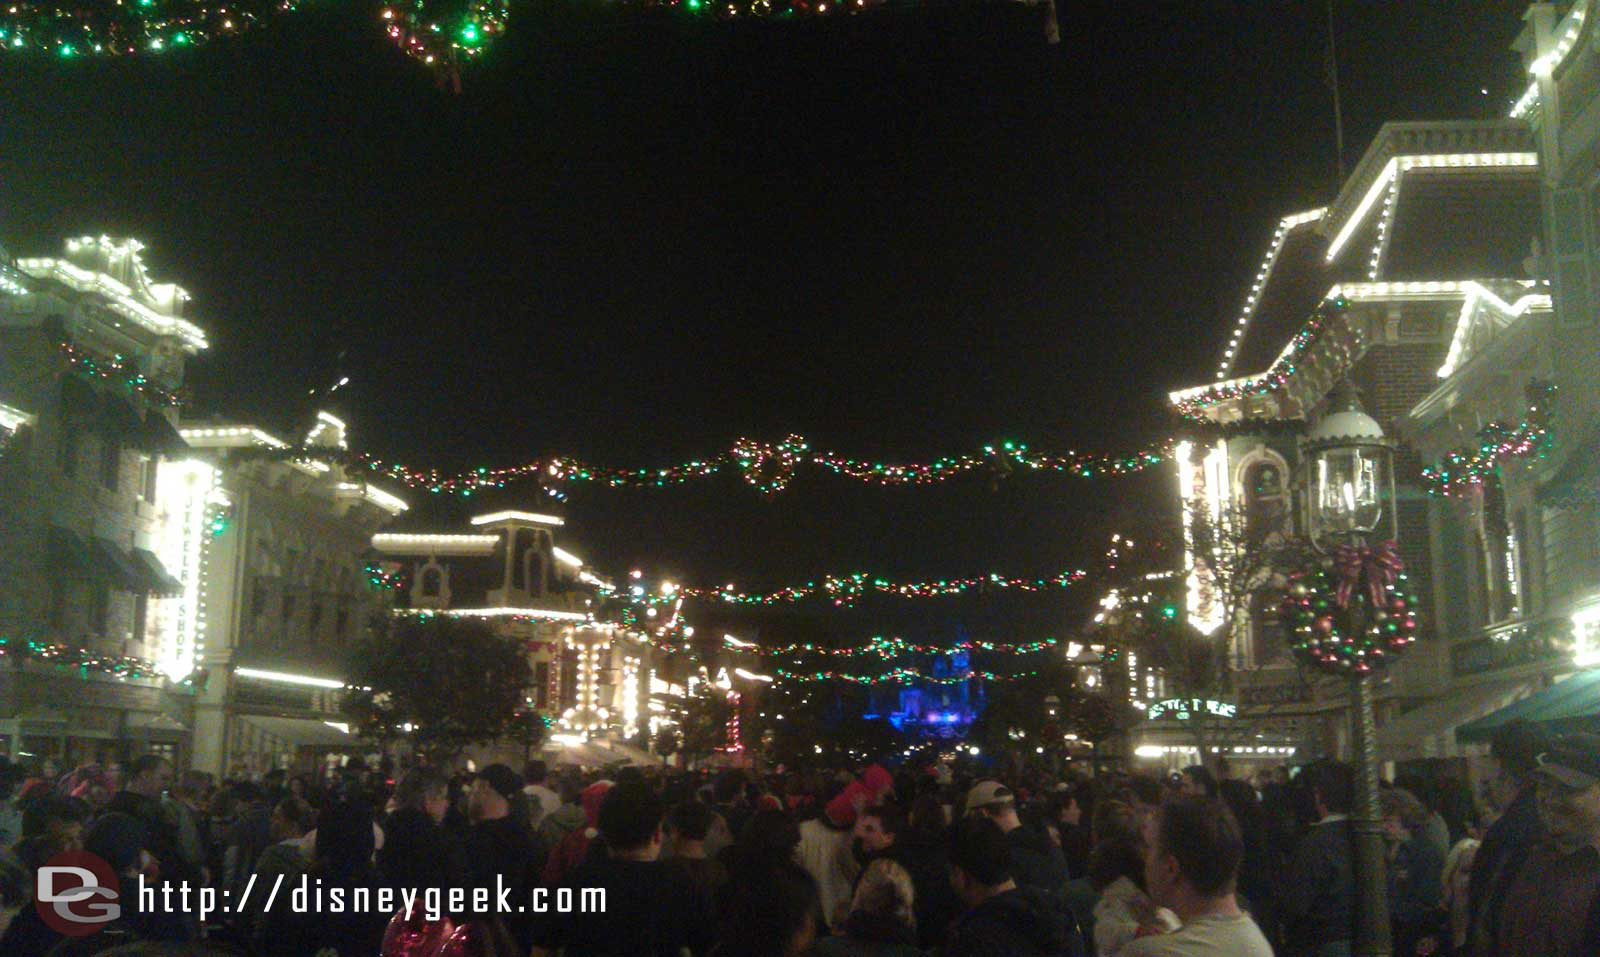 Main Street has a good crowd for the show.